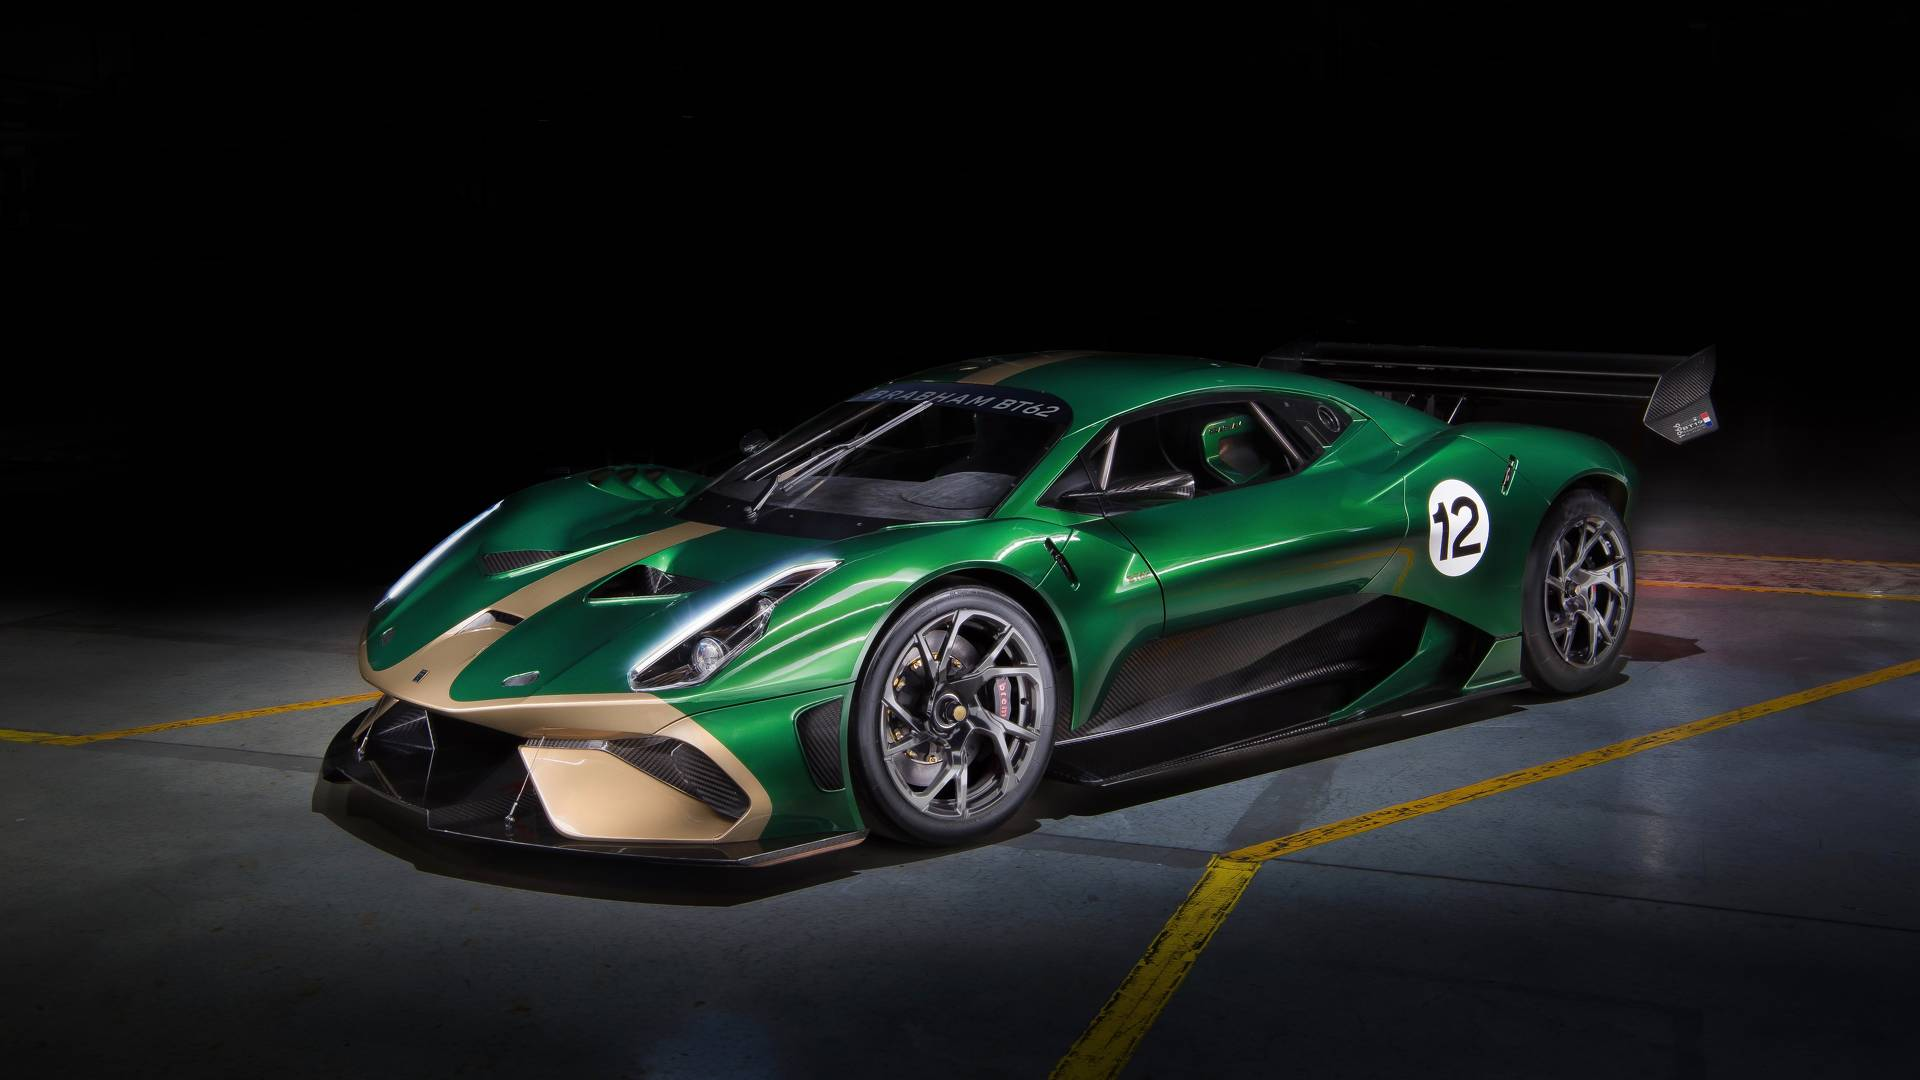 Mclaren Car Price >> 2018 Brabham BT62 Track-only Supercar Goes Official - autoevolution